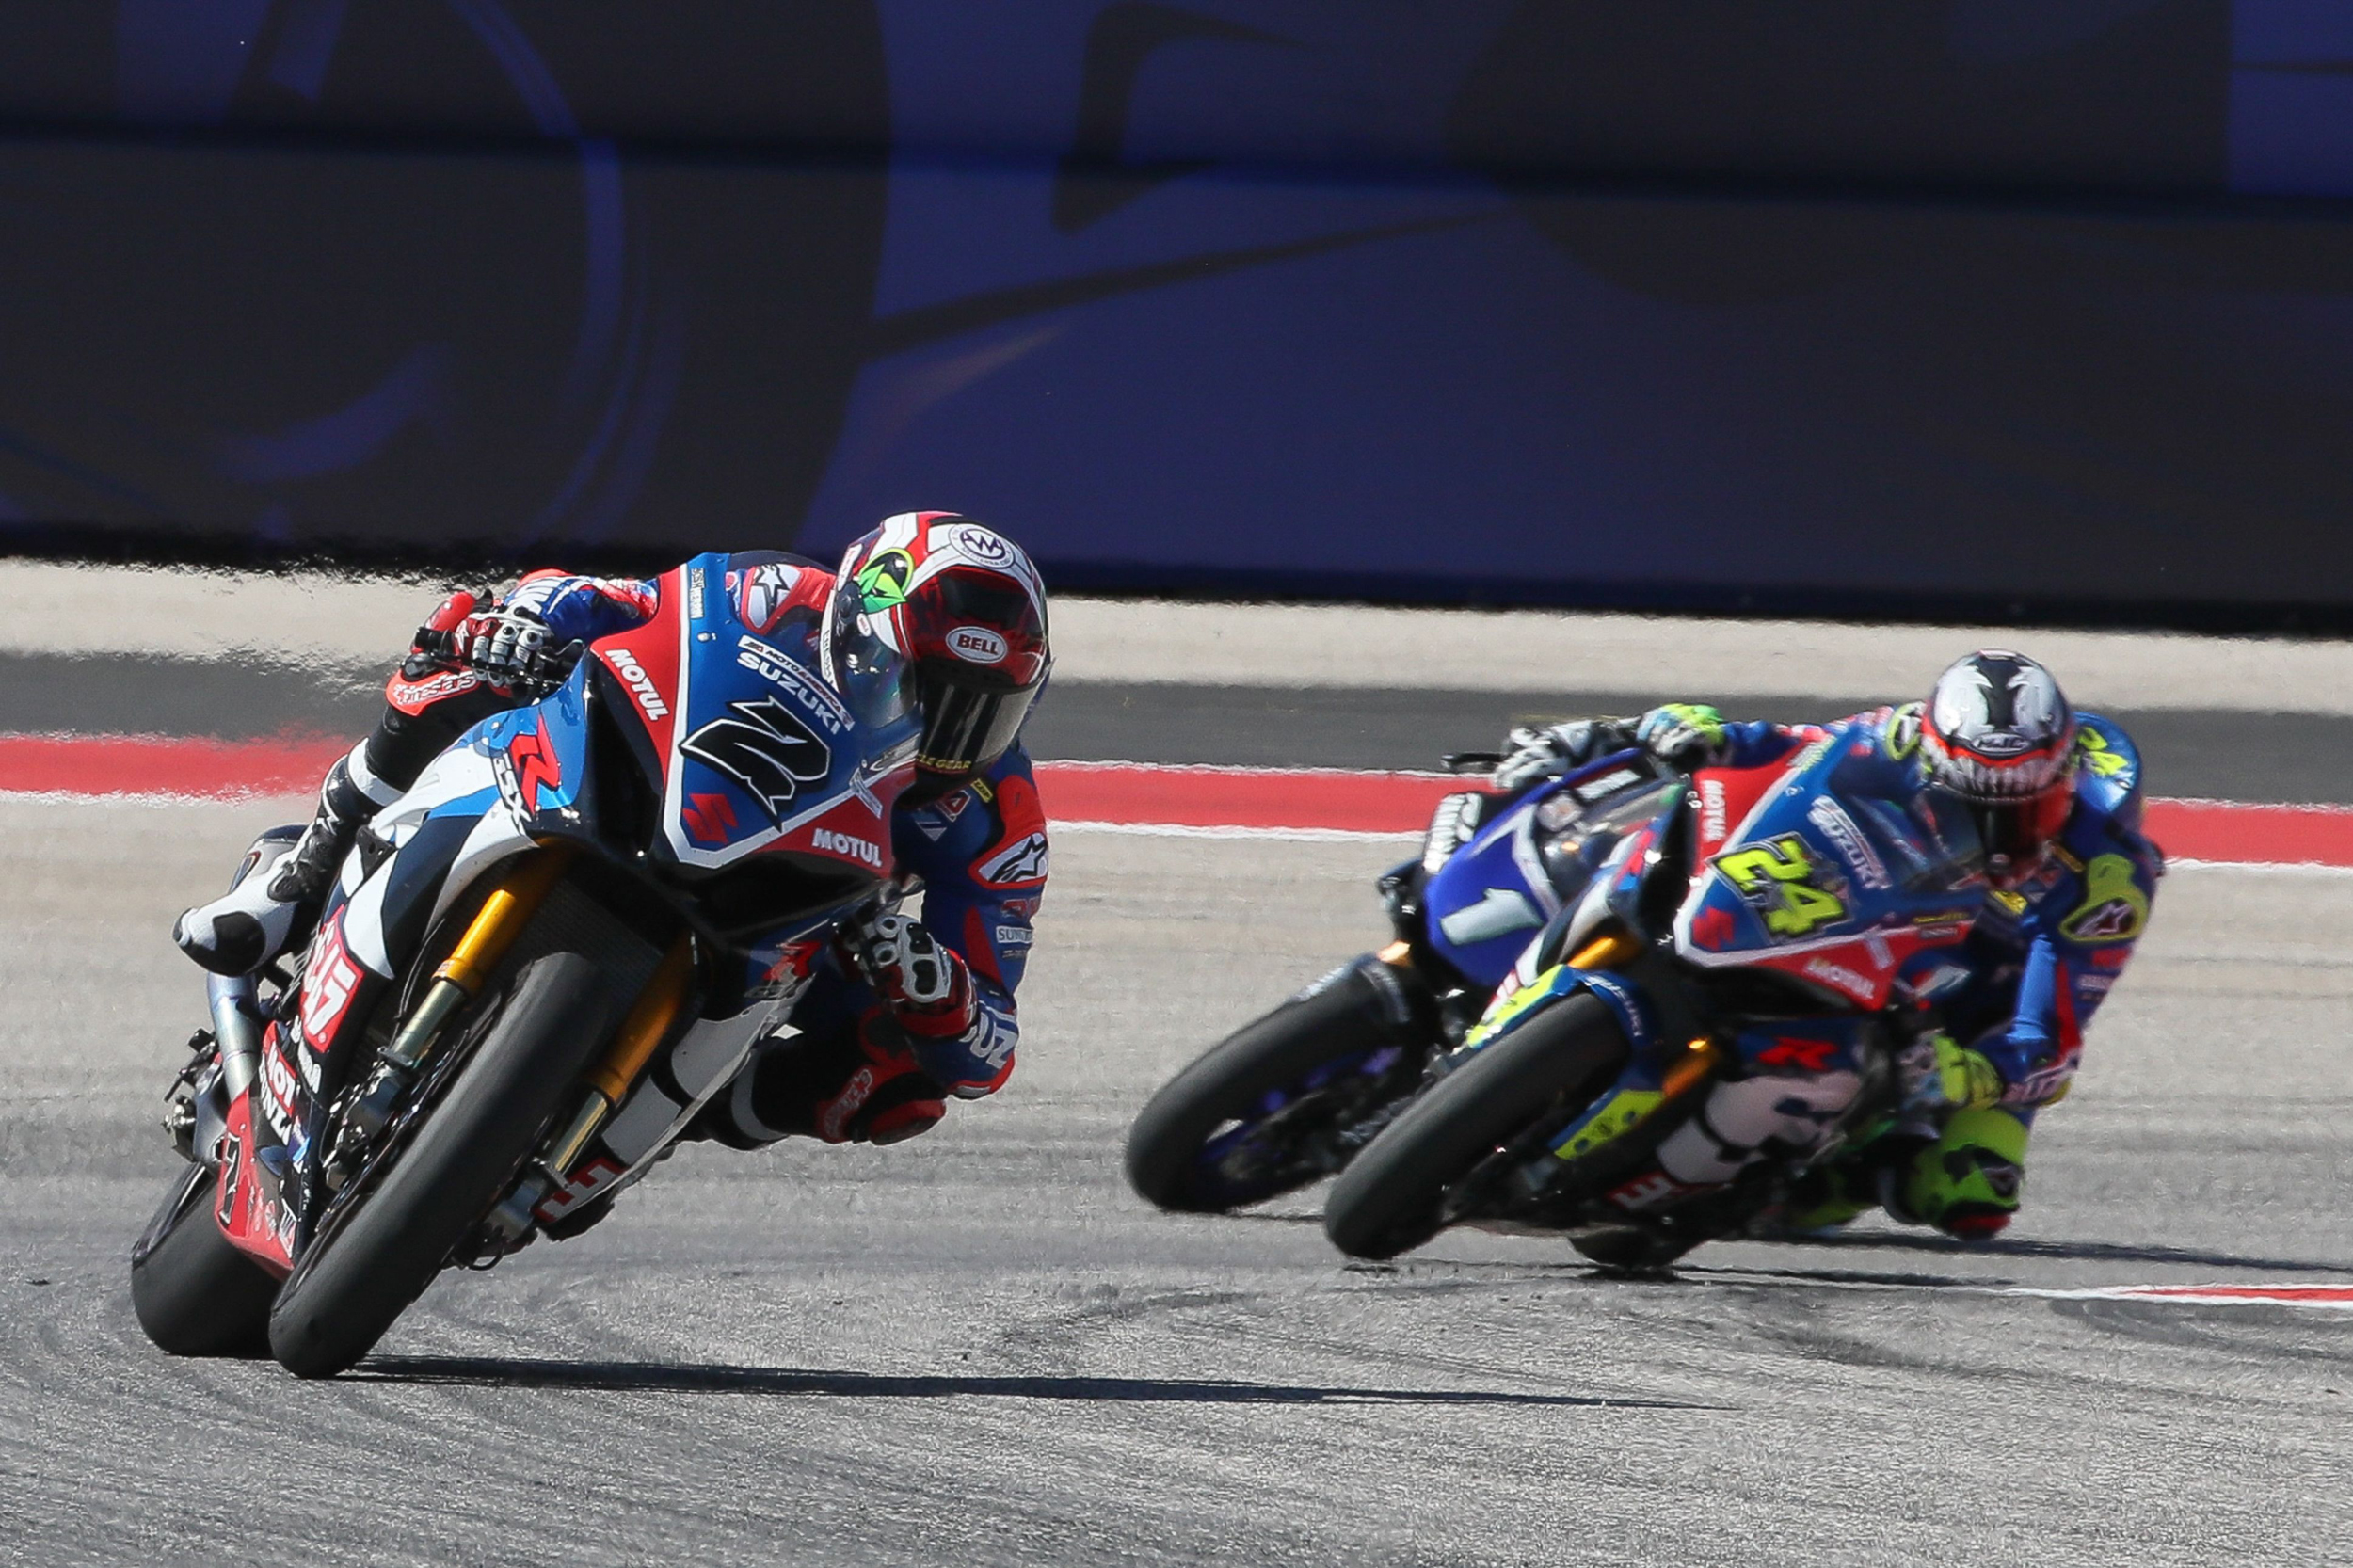 Josh Herrin (#2) and Toni Elias (#24) team up to take a strong 1-2 finish in Superbike Race Two on Sunday [4]